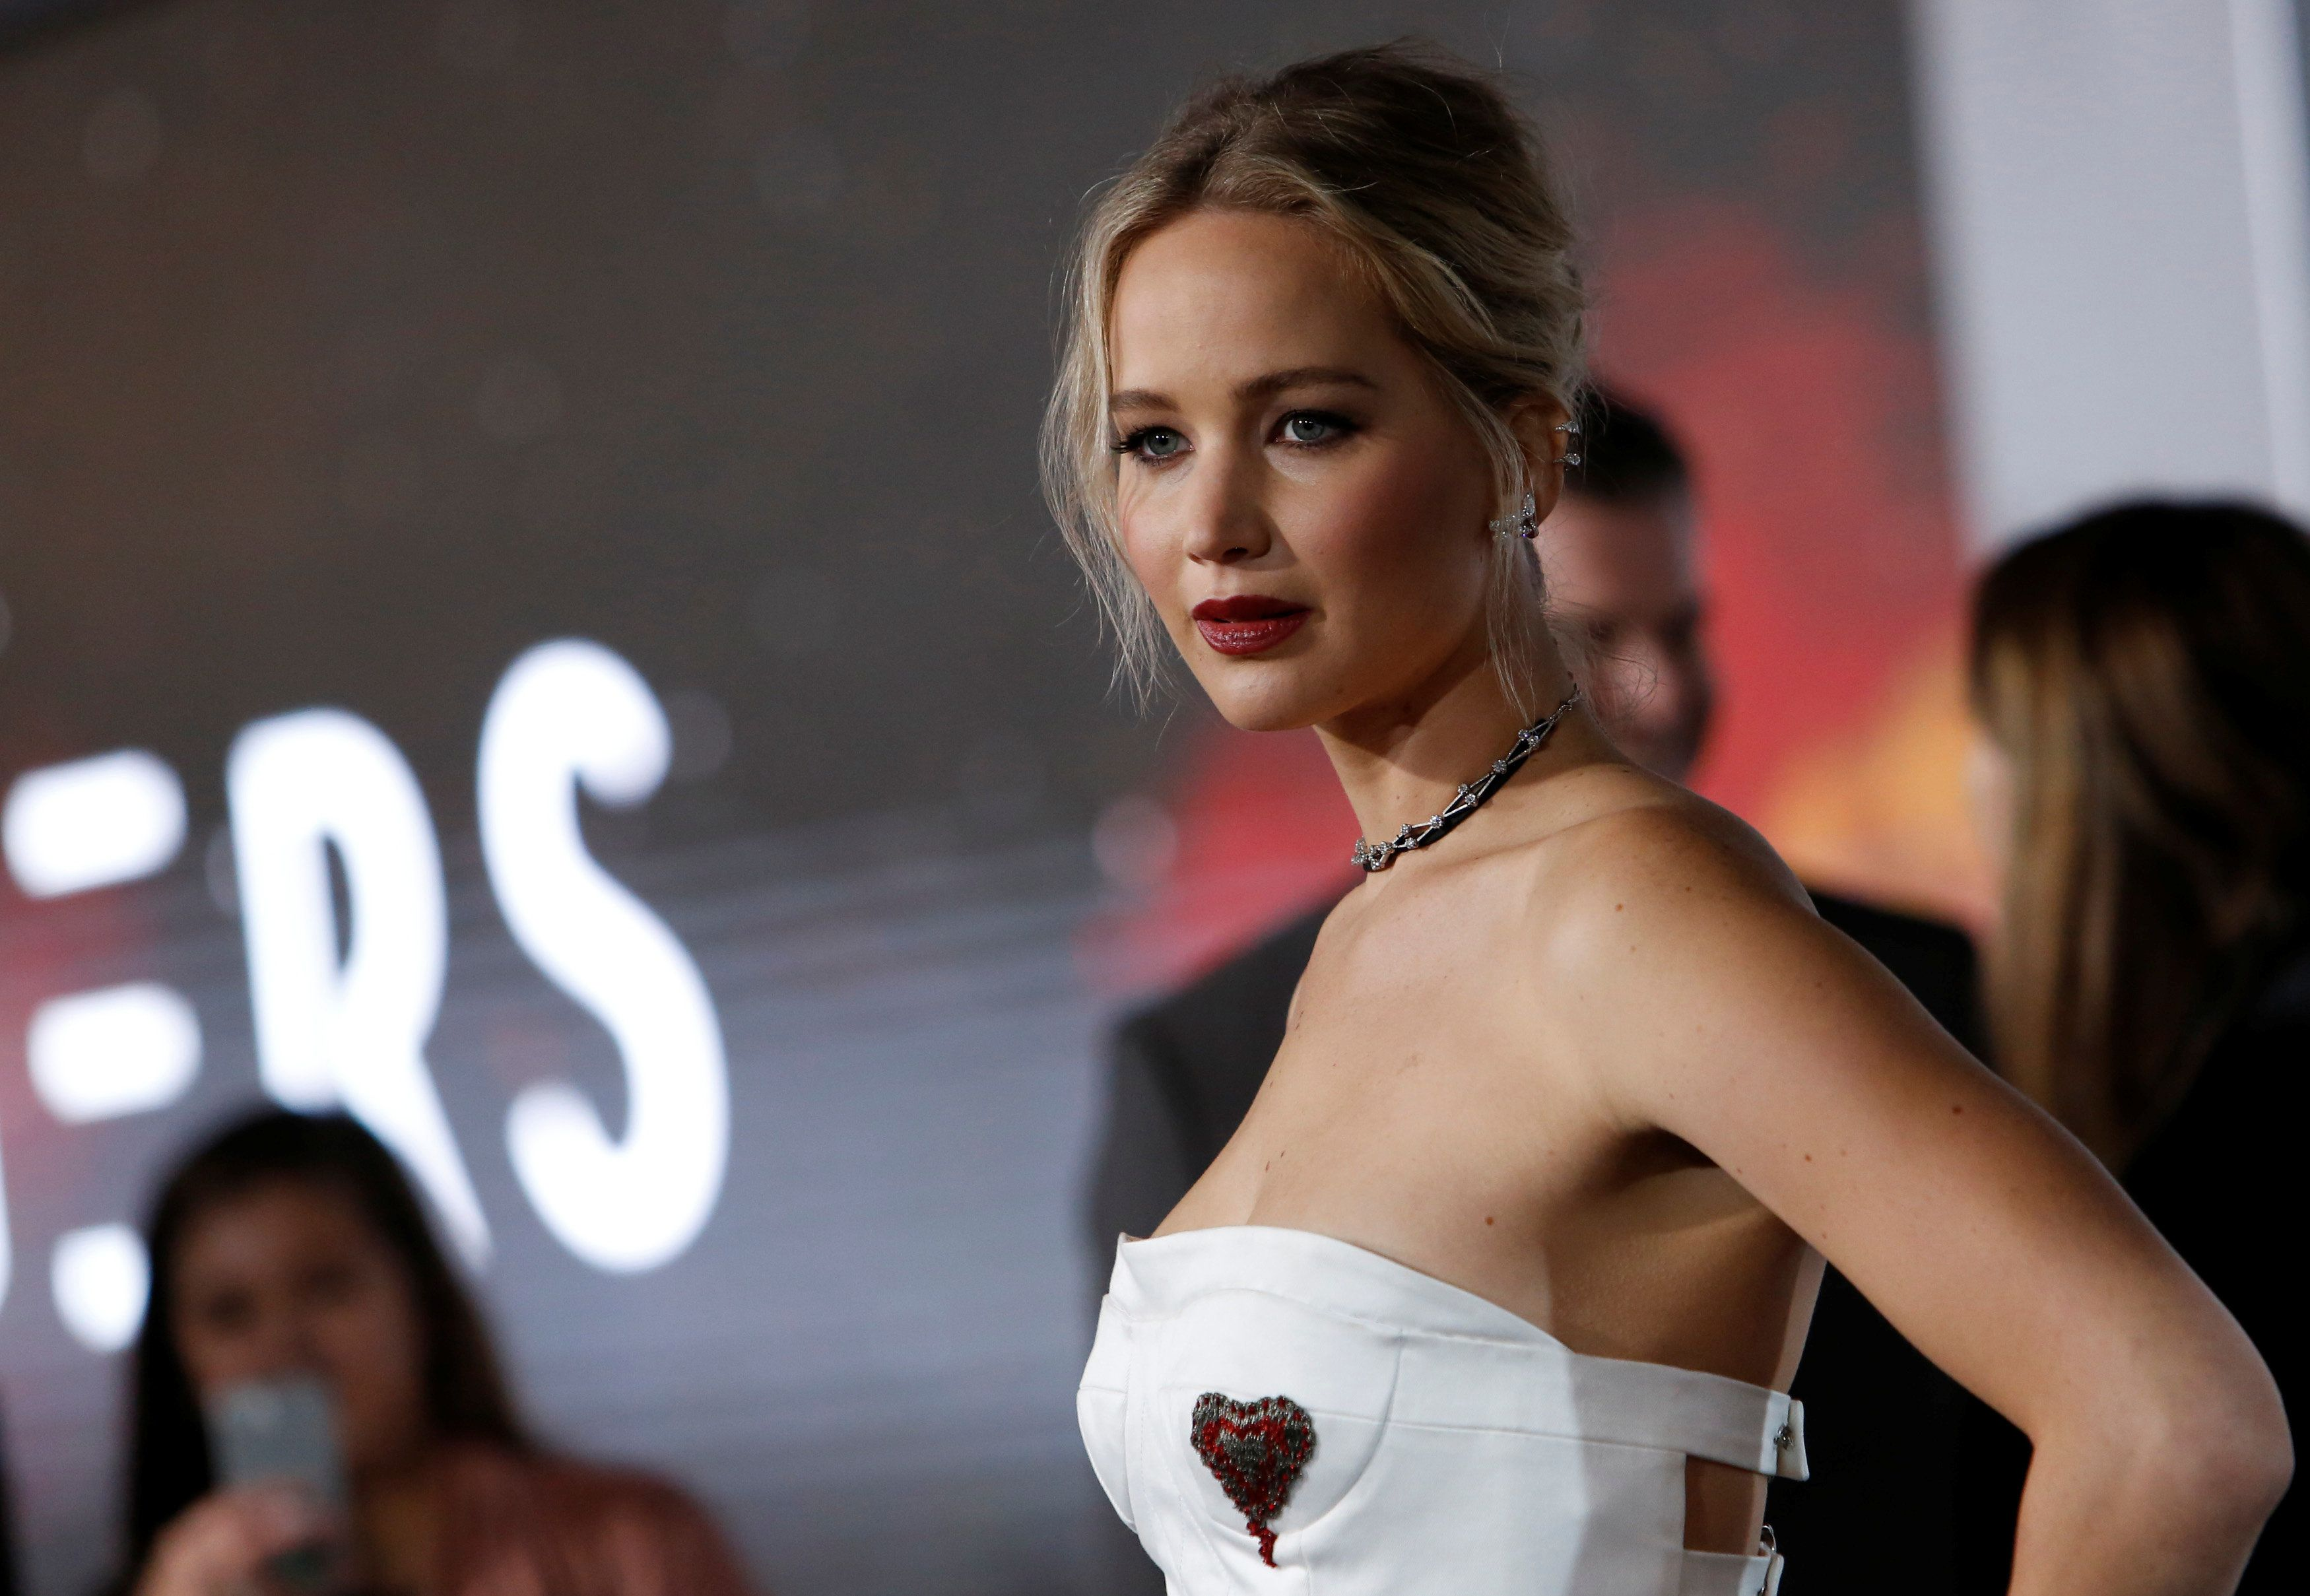 Actress Jennifer Lawrence was one of several celebrities who complained that their private photos...